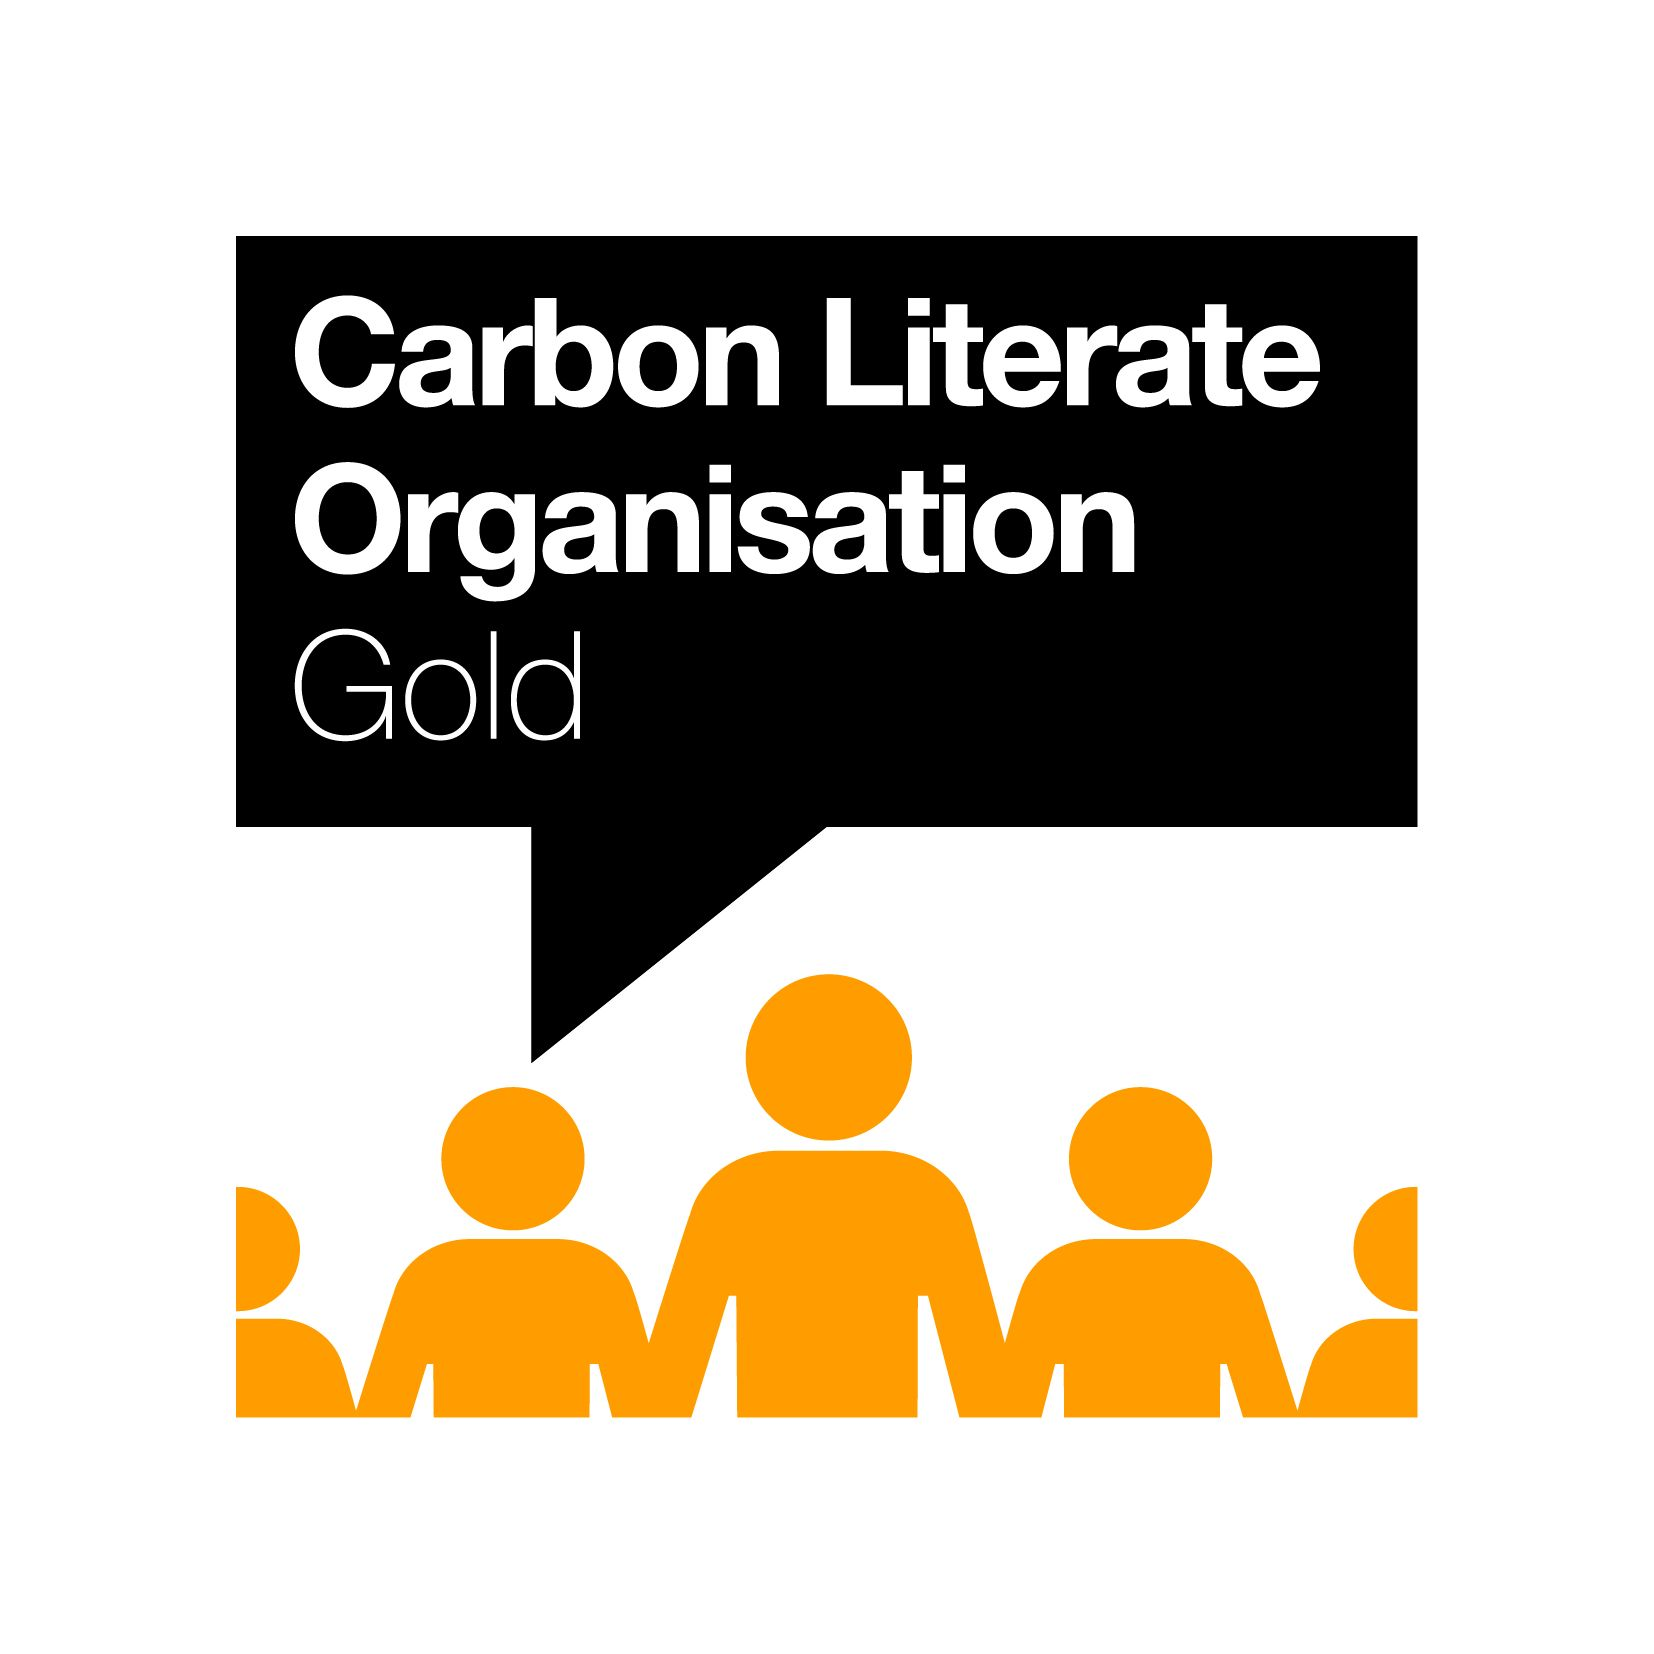 Carbon Literate Gold.jpg